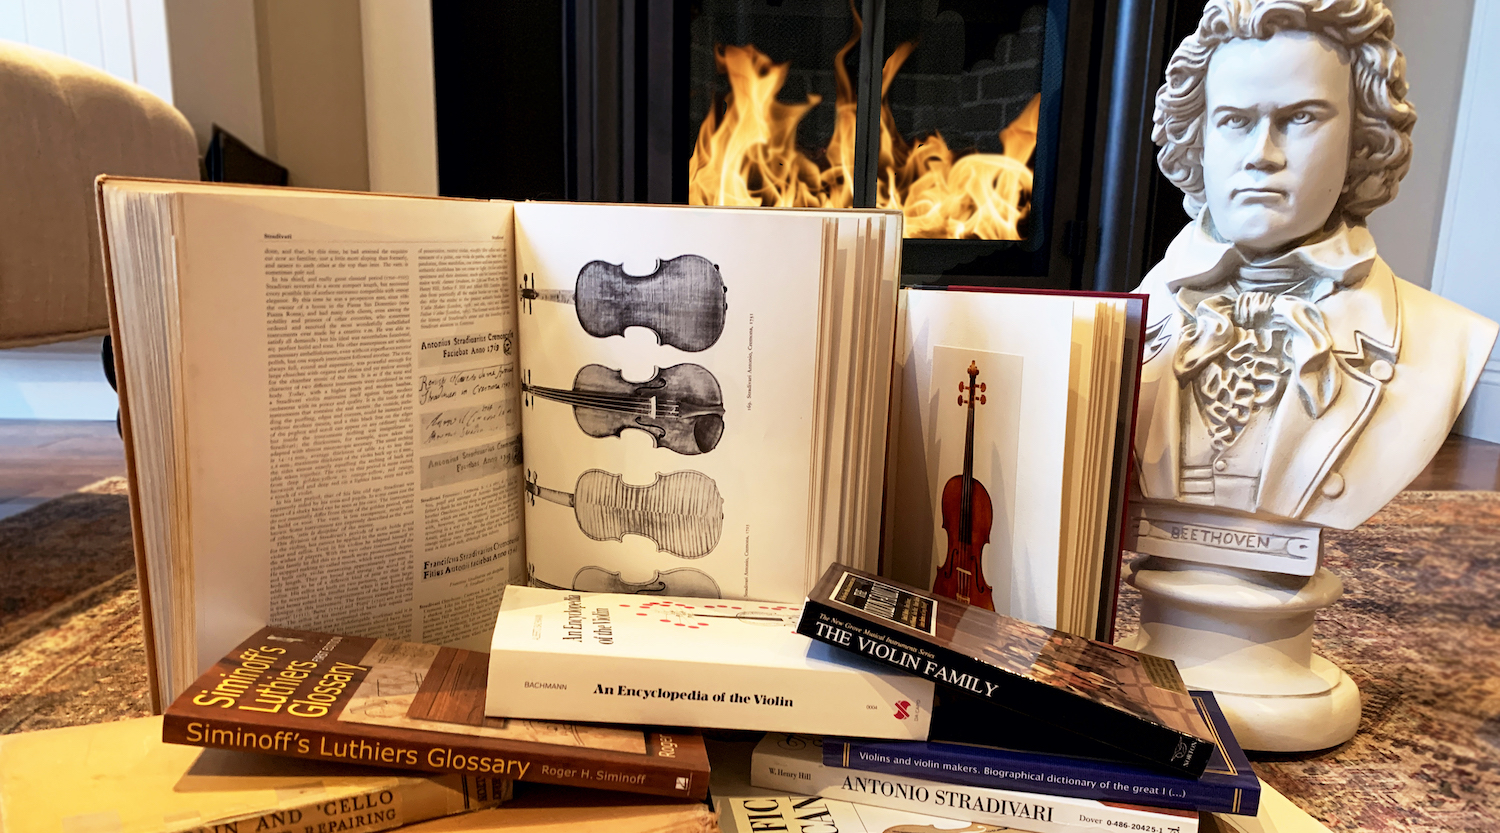 Stacks of violin encyclopedias and books with a Beethoven bust in front of a fireplace